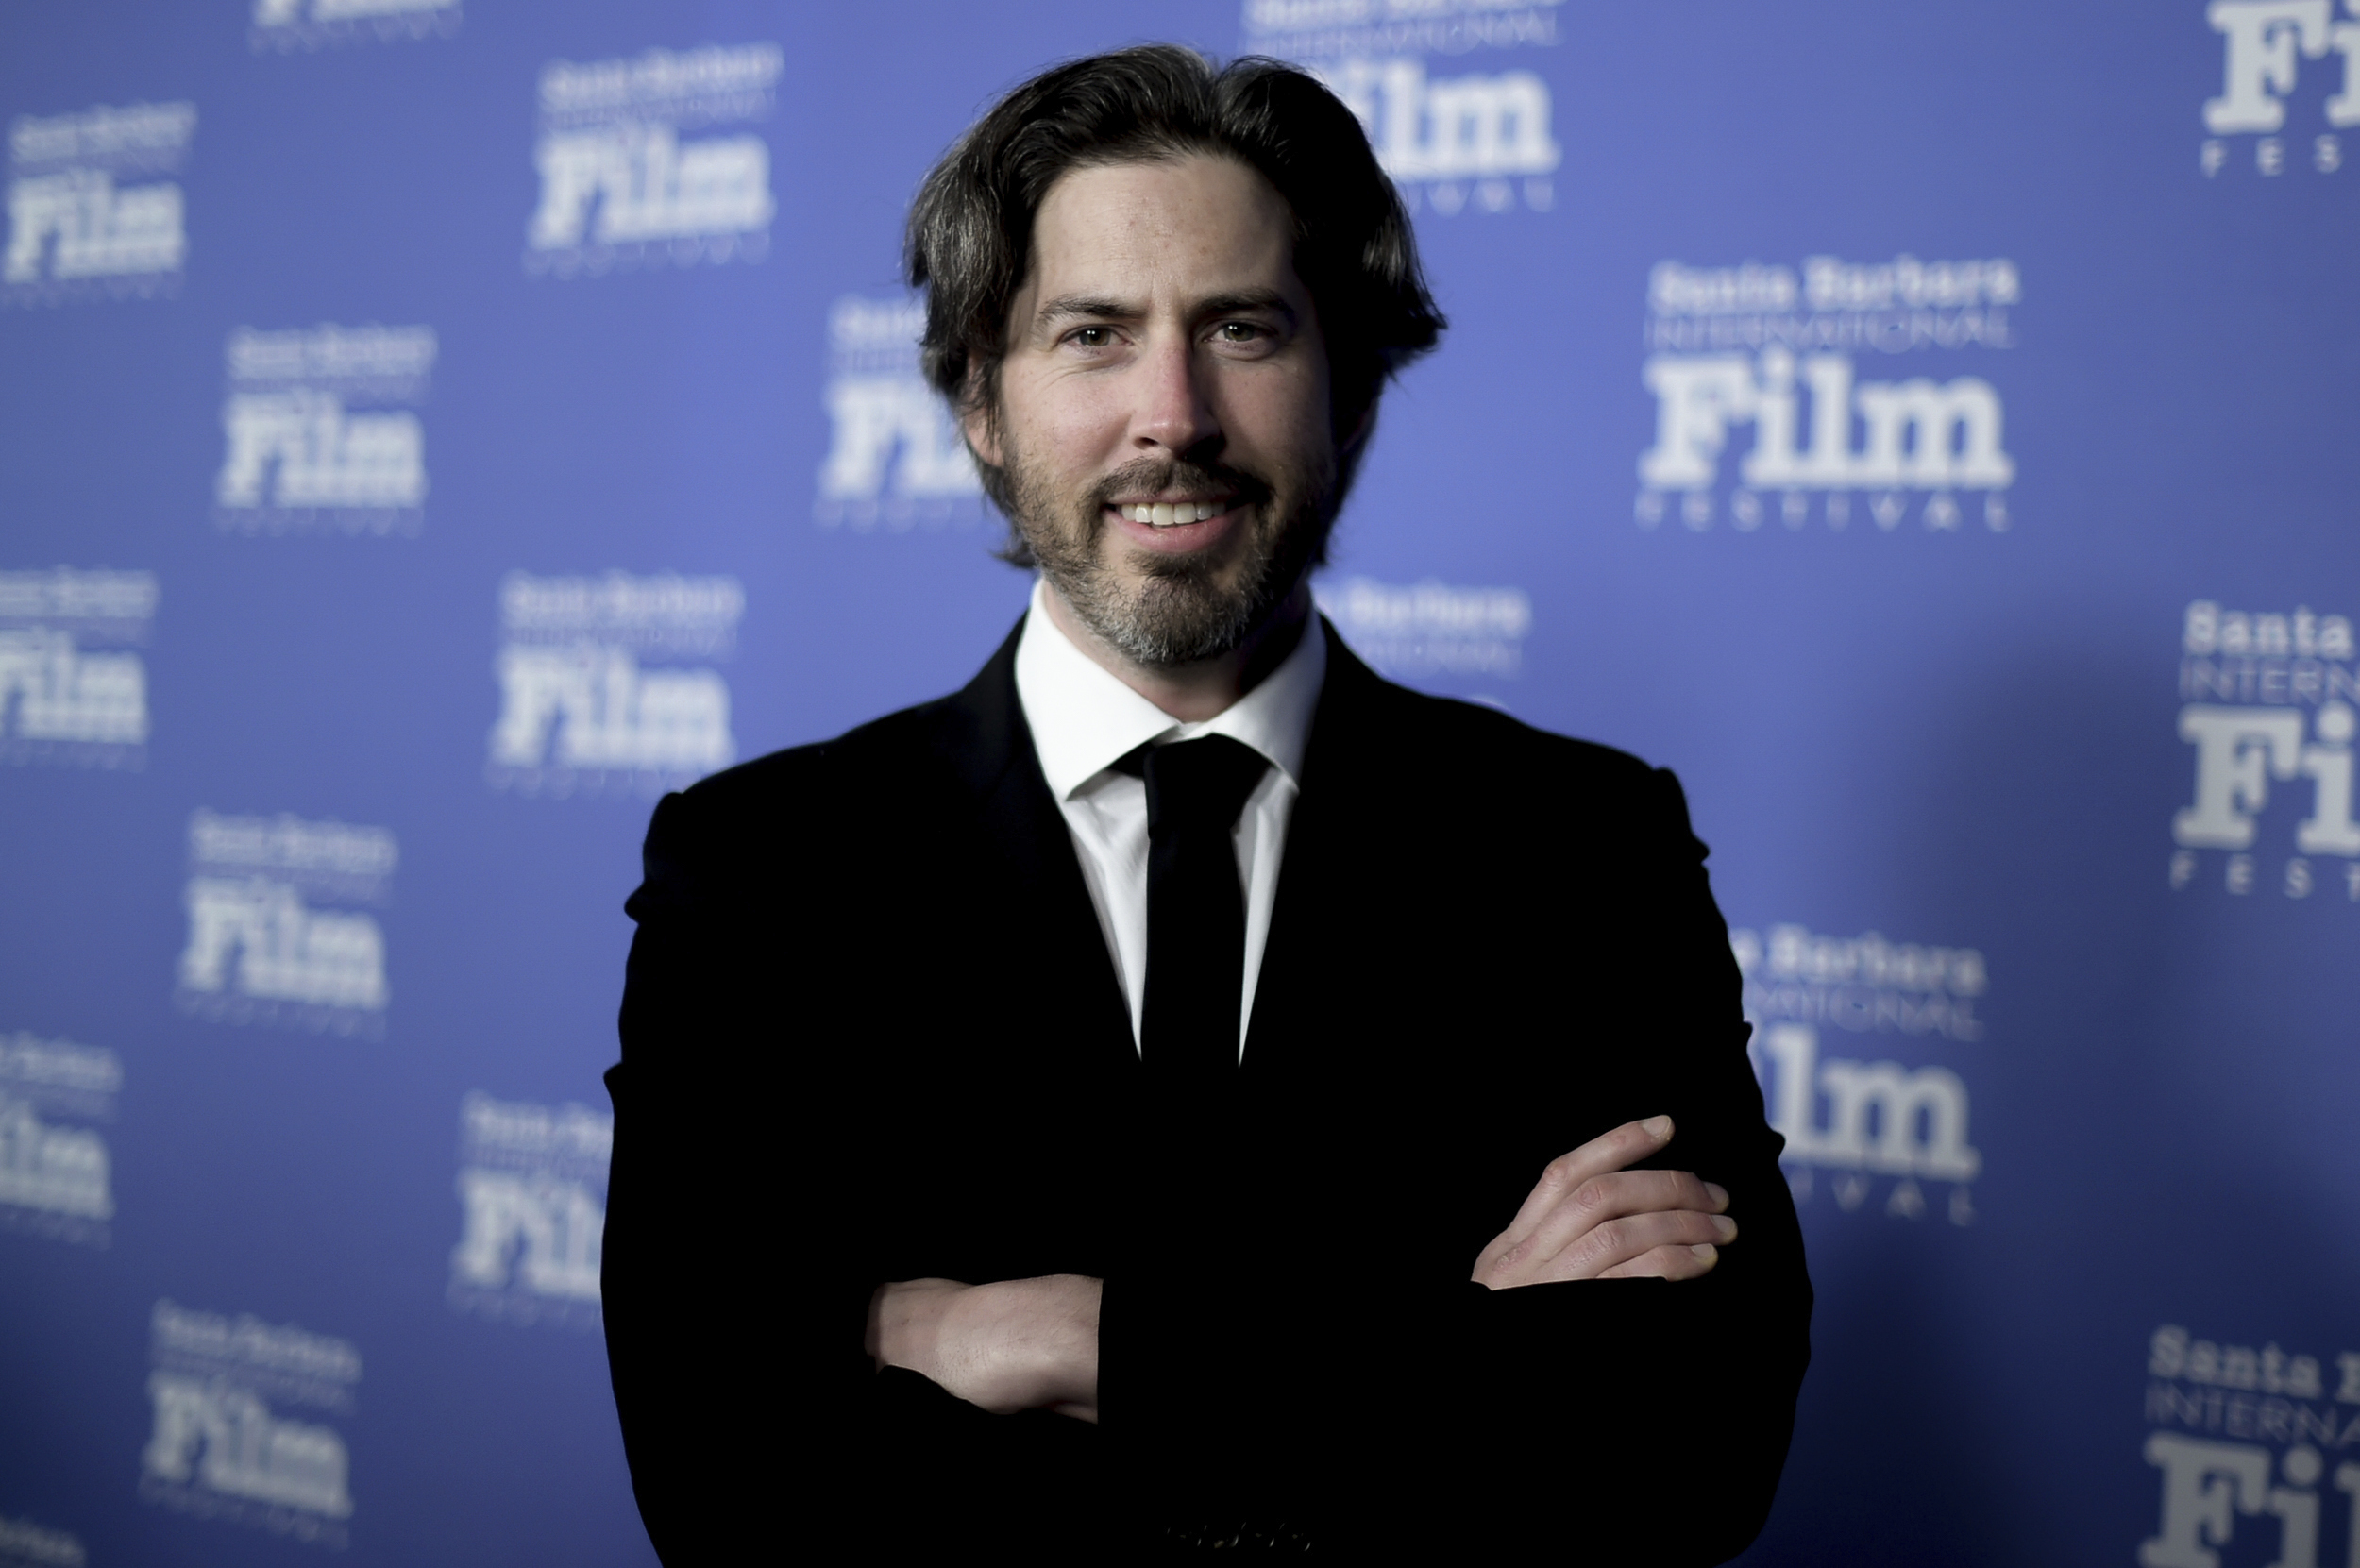 Four-time Oscar nominee Jason Reitman is set to direct a new installment in the Ghostbusters series for Sony Pictures set to come out in the summer of 2020.